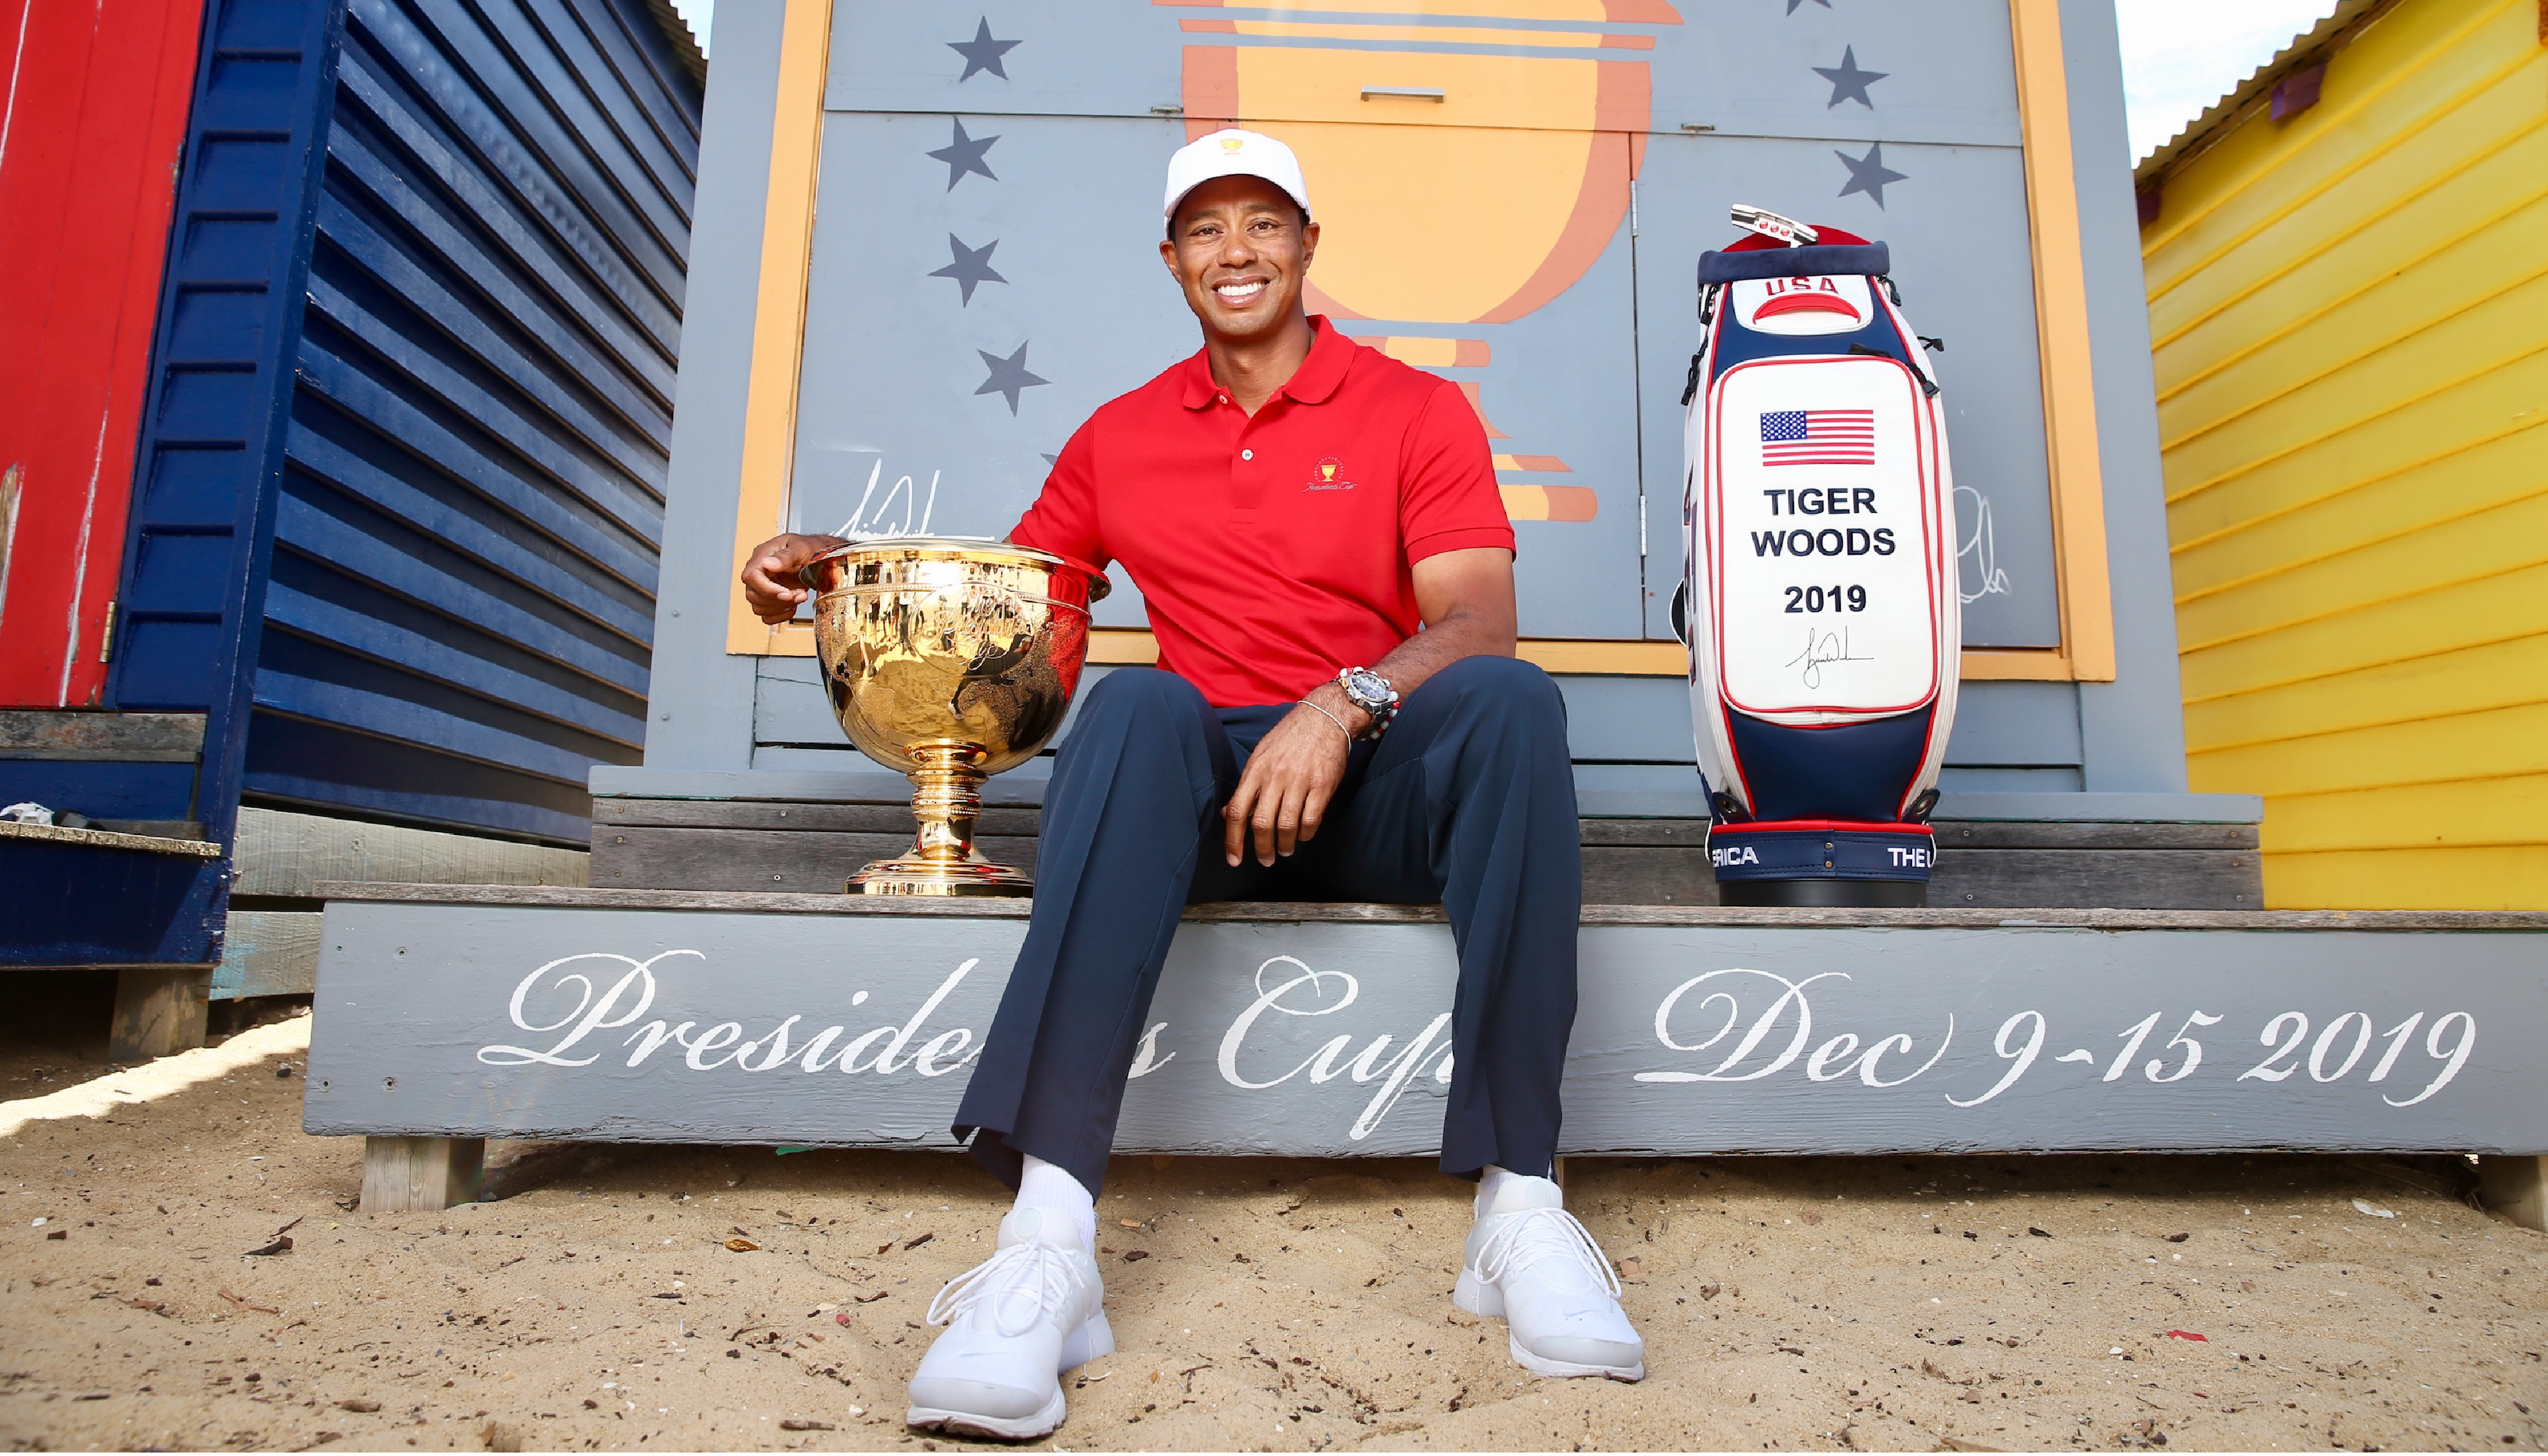 Captain Woods Intends To Play Presidents Cup cover image